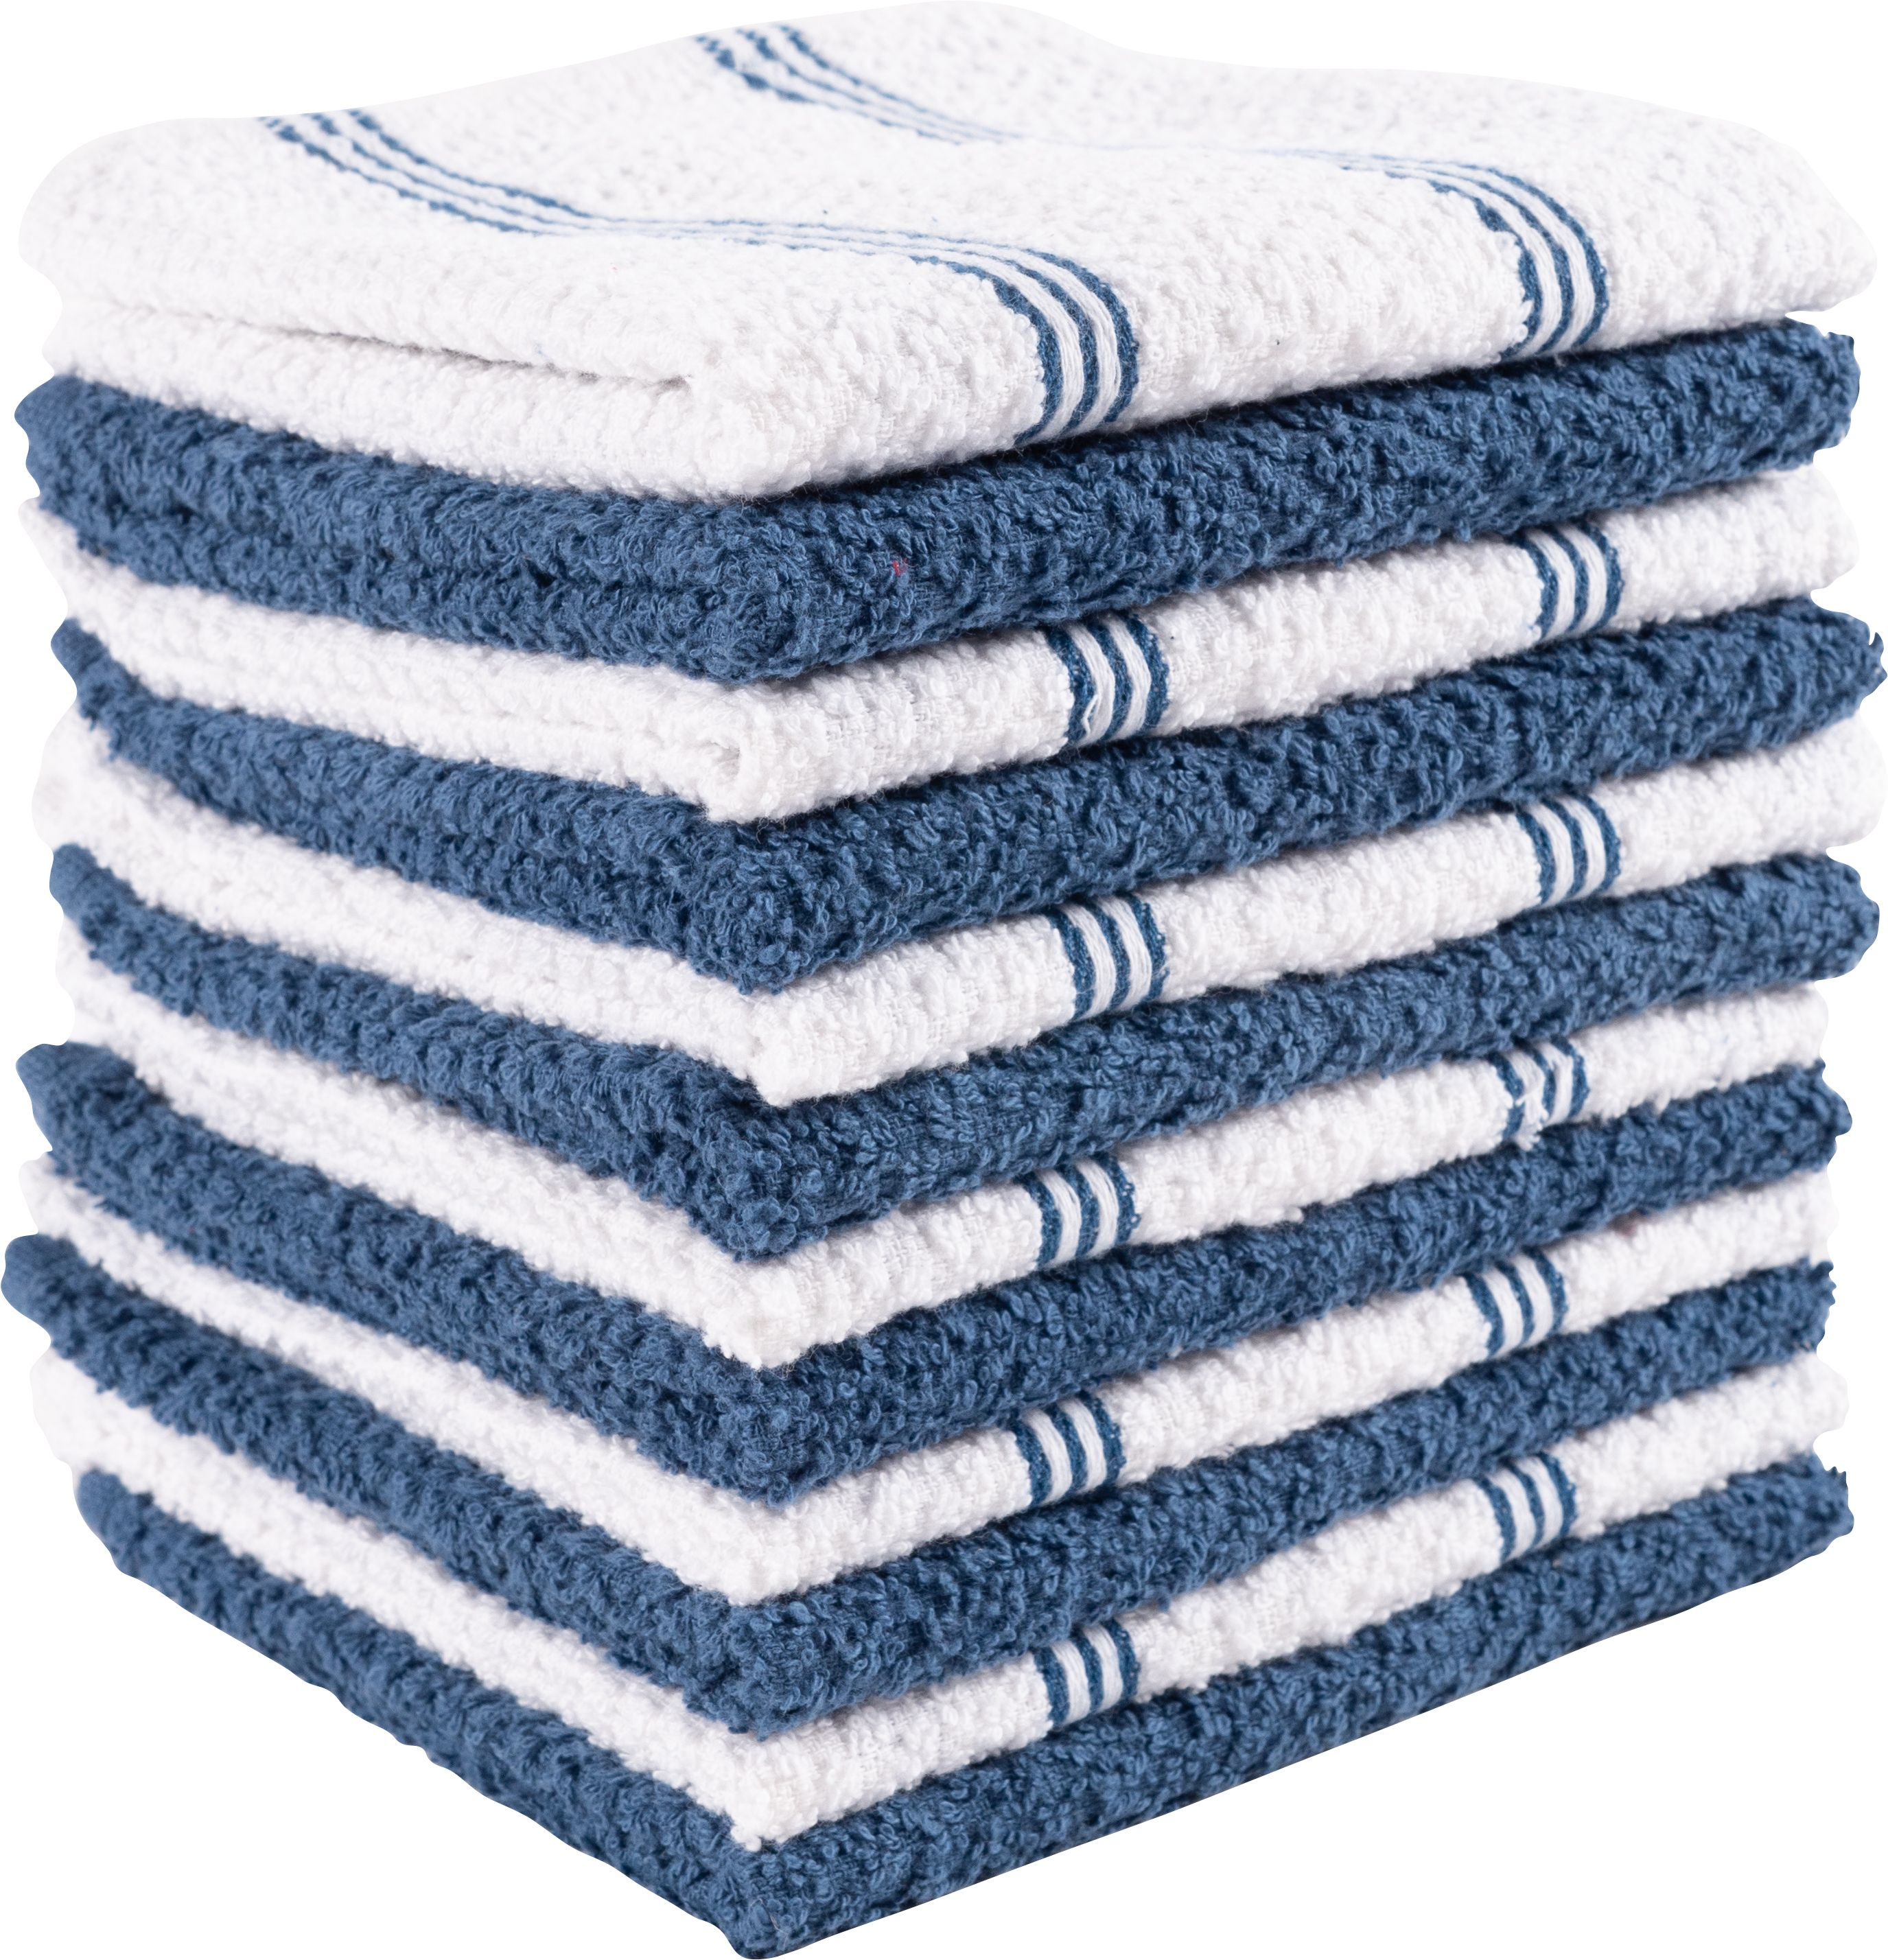 100 terrycloth shop rags towels cleaning wiping 100/% COTTON janitorial 12x12